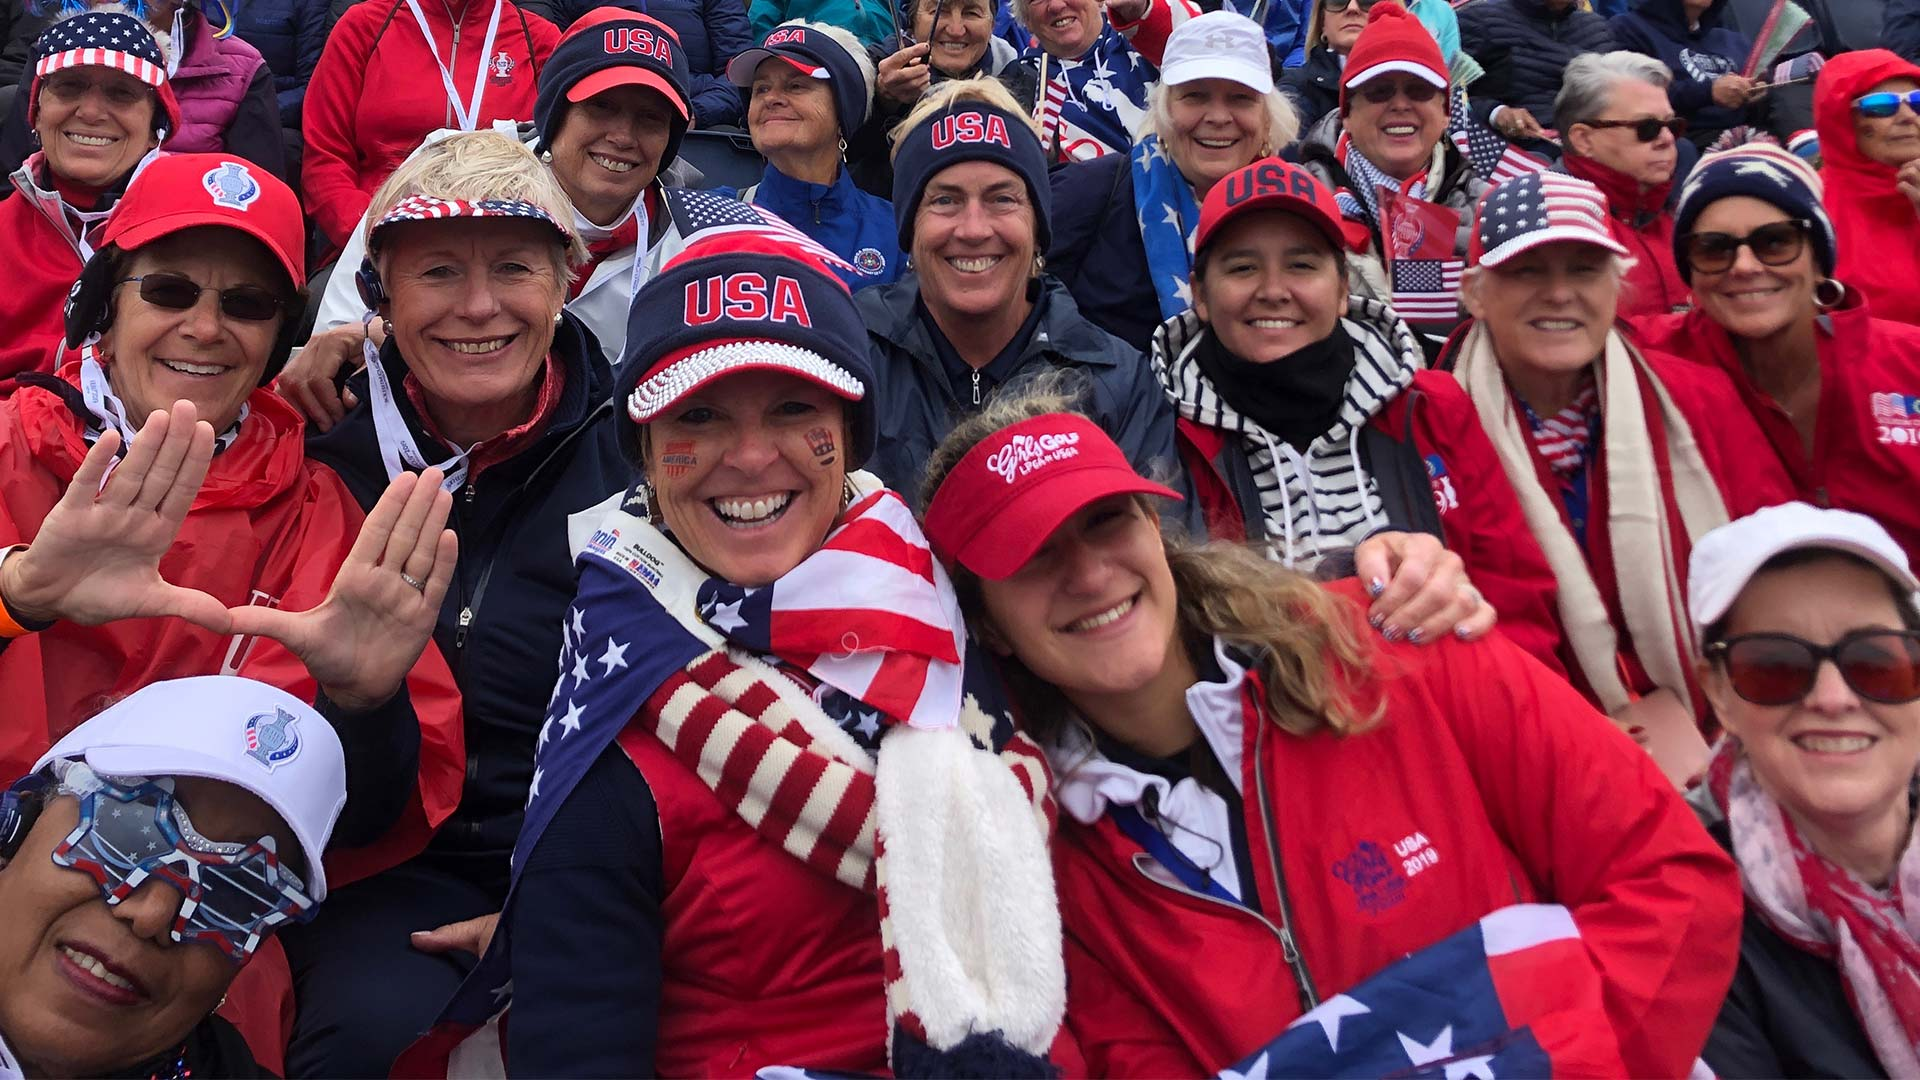 USA fans at Solheim Cup